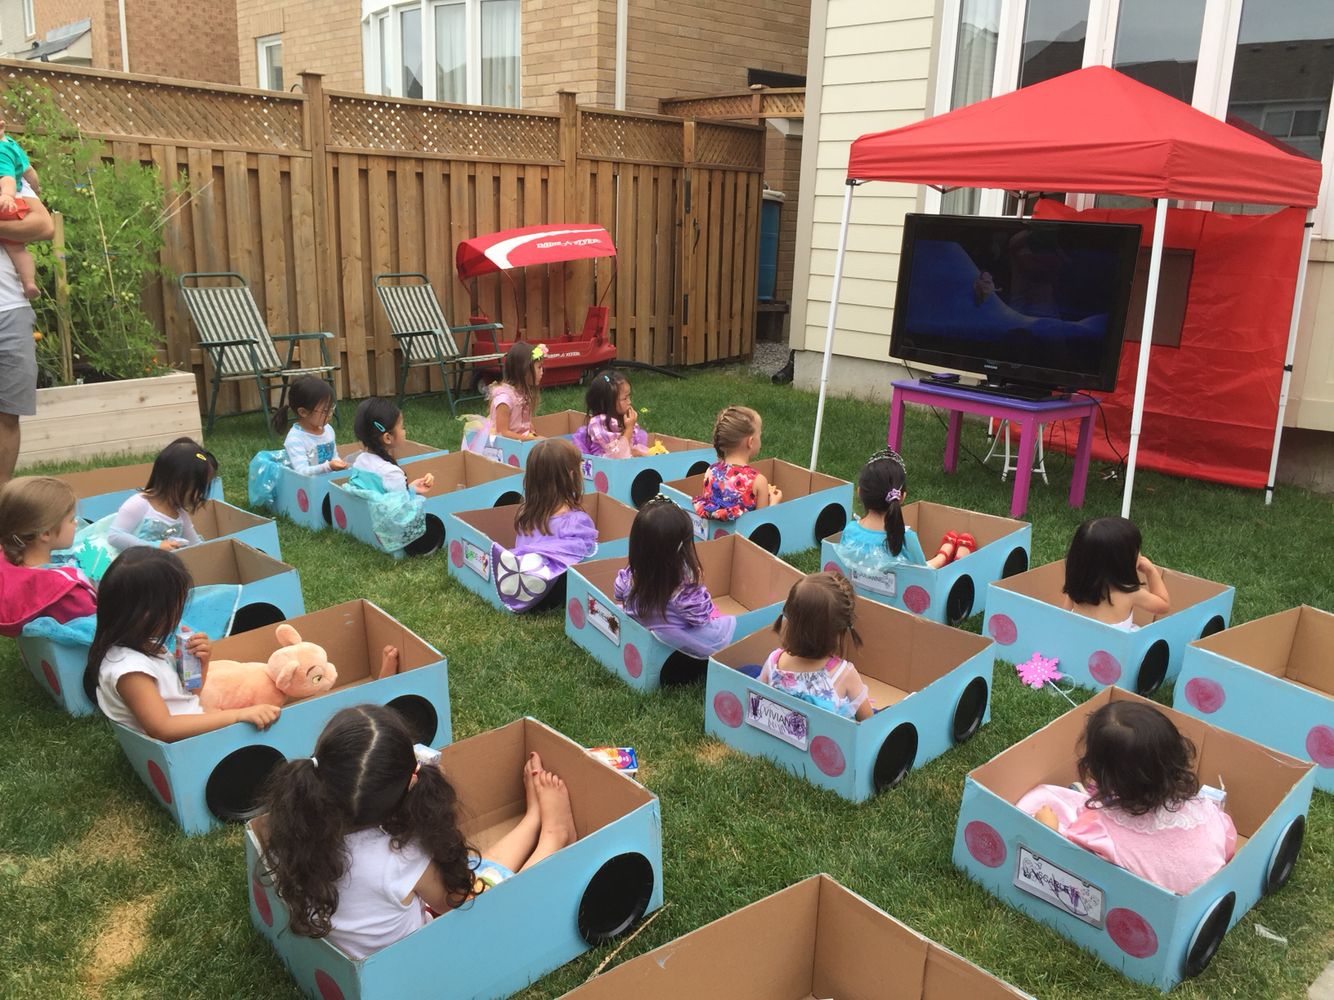 Leah's Drive-in movie birthday party. It's daylight so a ...